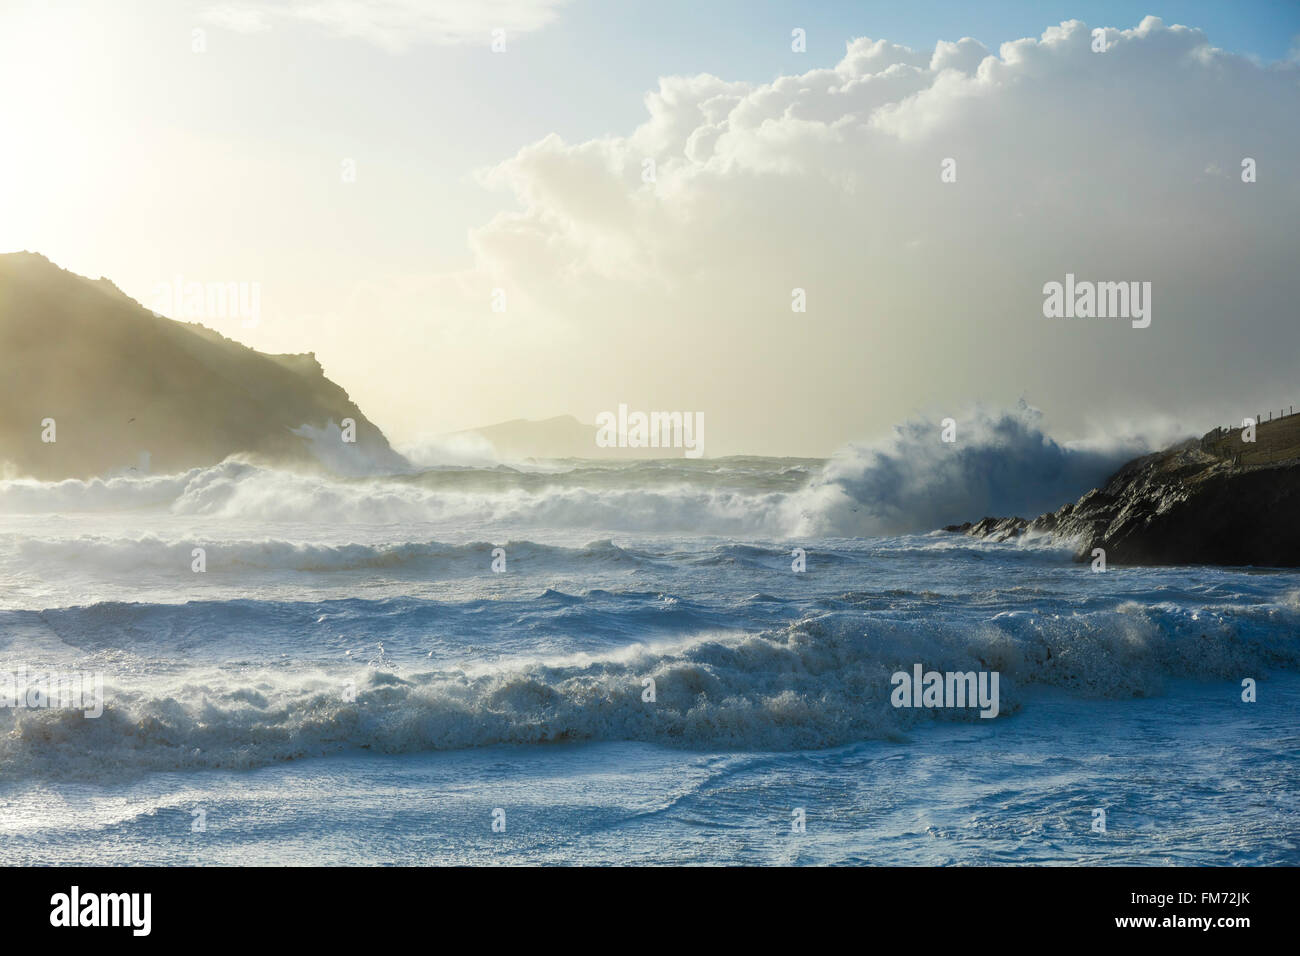 Storm waves breaking in Clogher Bay, Dingle Peninsula, County Kerry, Ireland. - Stock Image